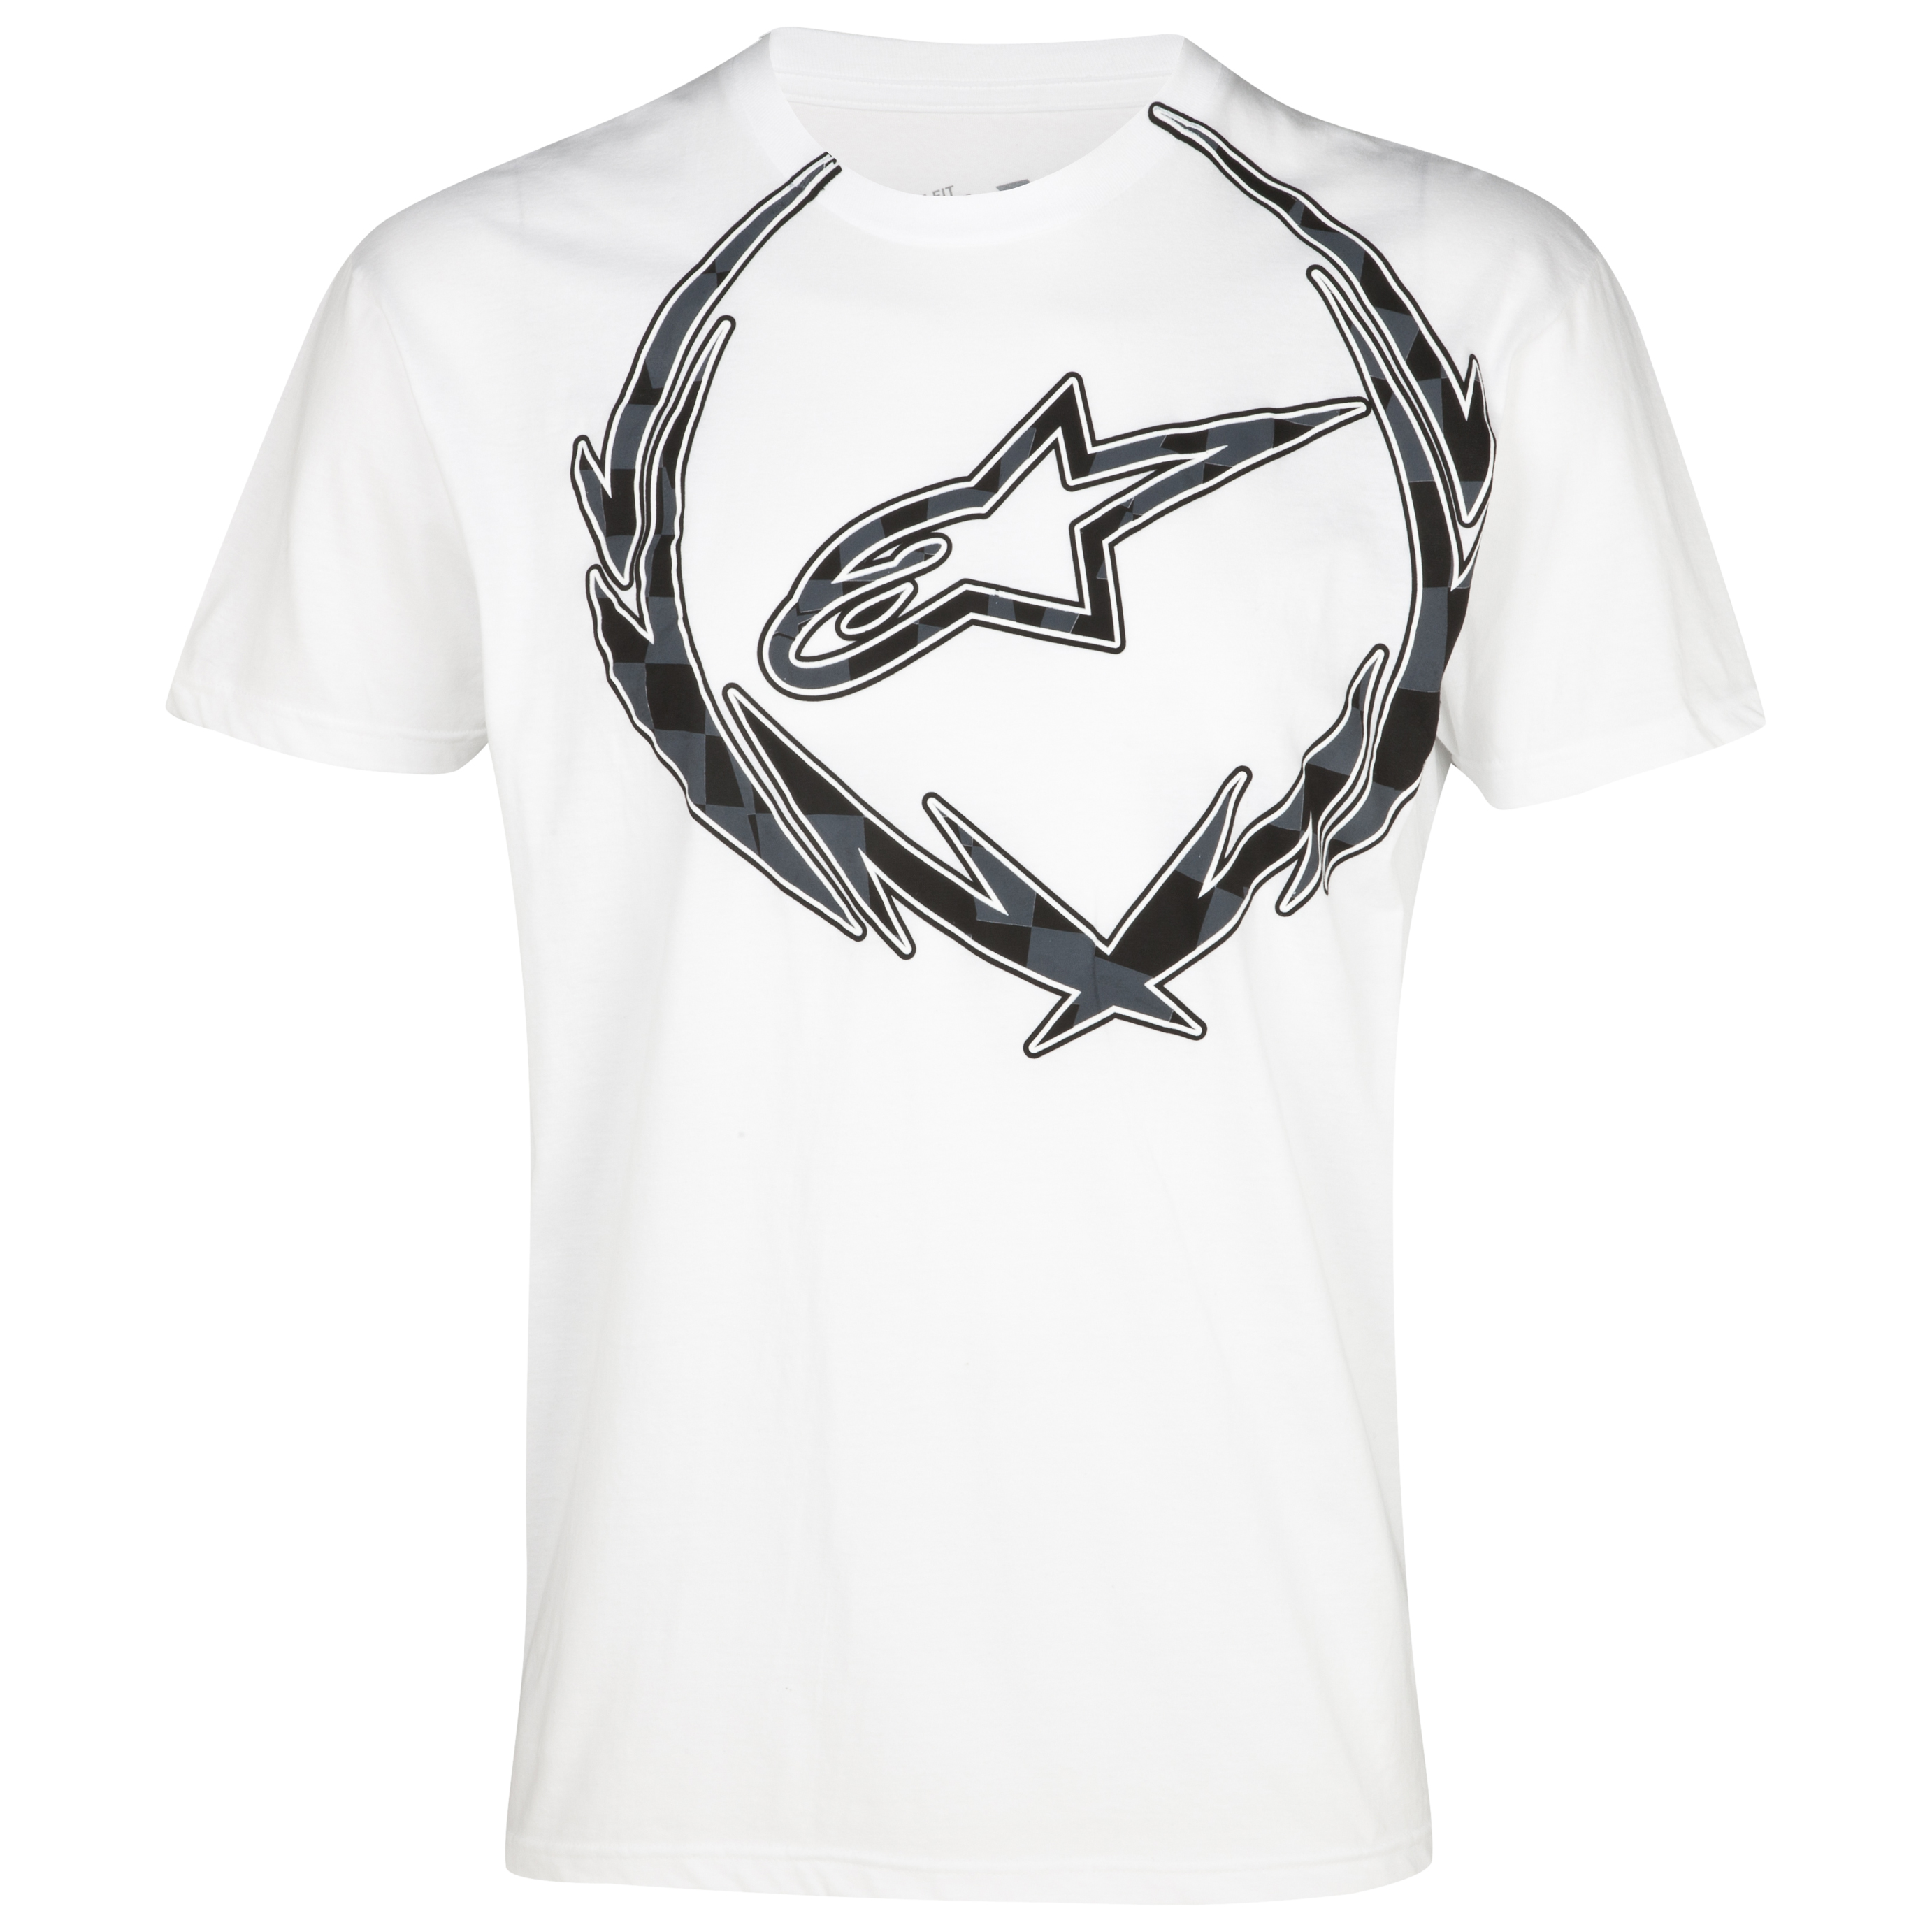 Alpinestars Metal Wreath T-Shirt - White